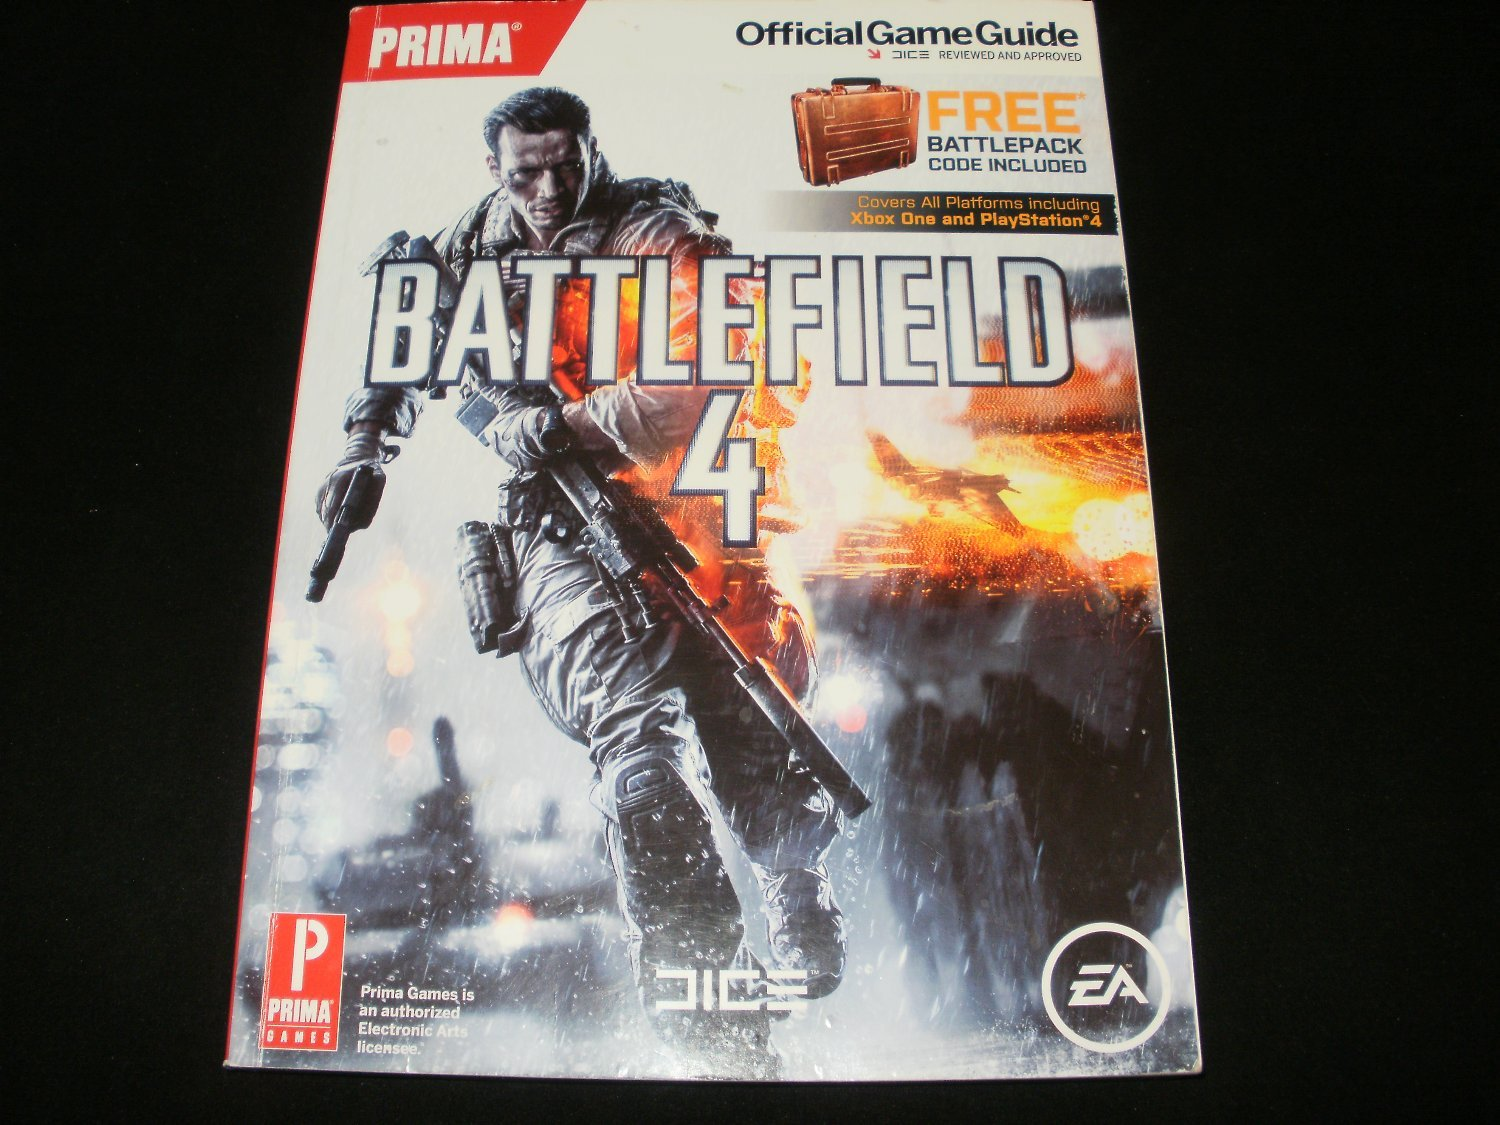 Battlefield 4 Official Game Guide - Prima (2013) - Paperback